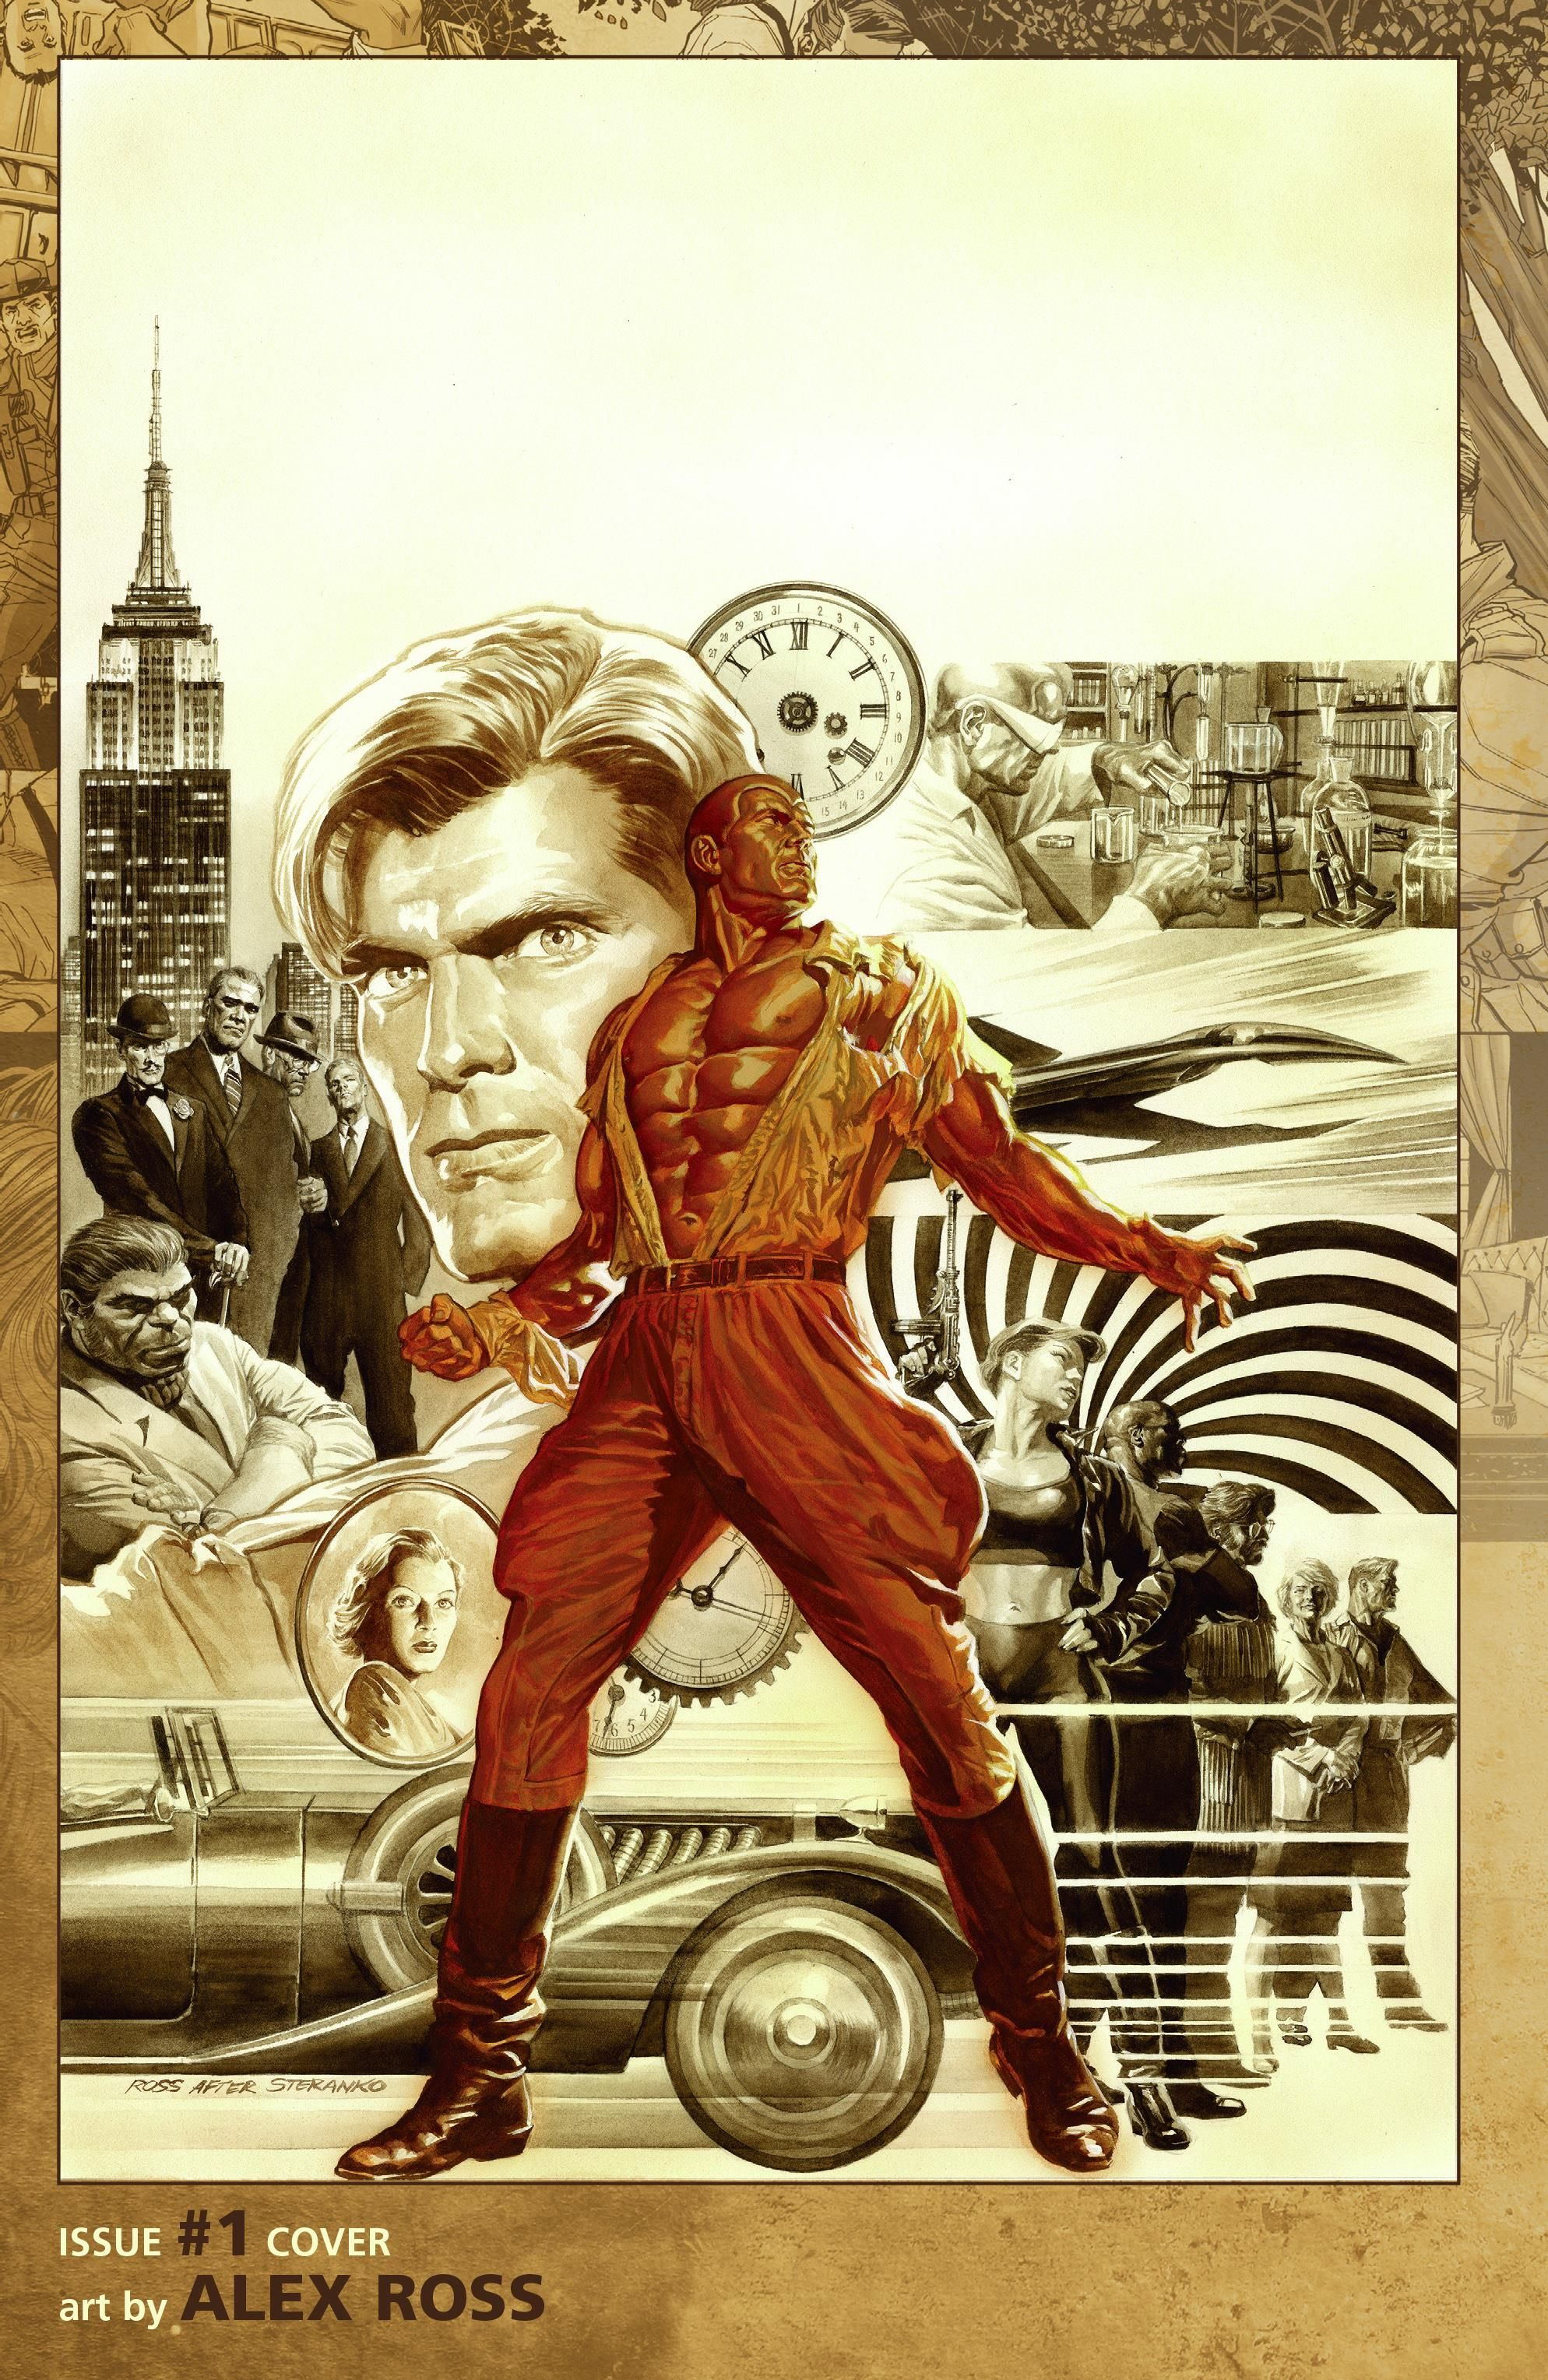 Doc Savage by Alex Ross